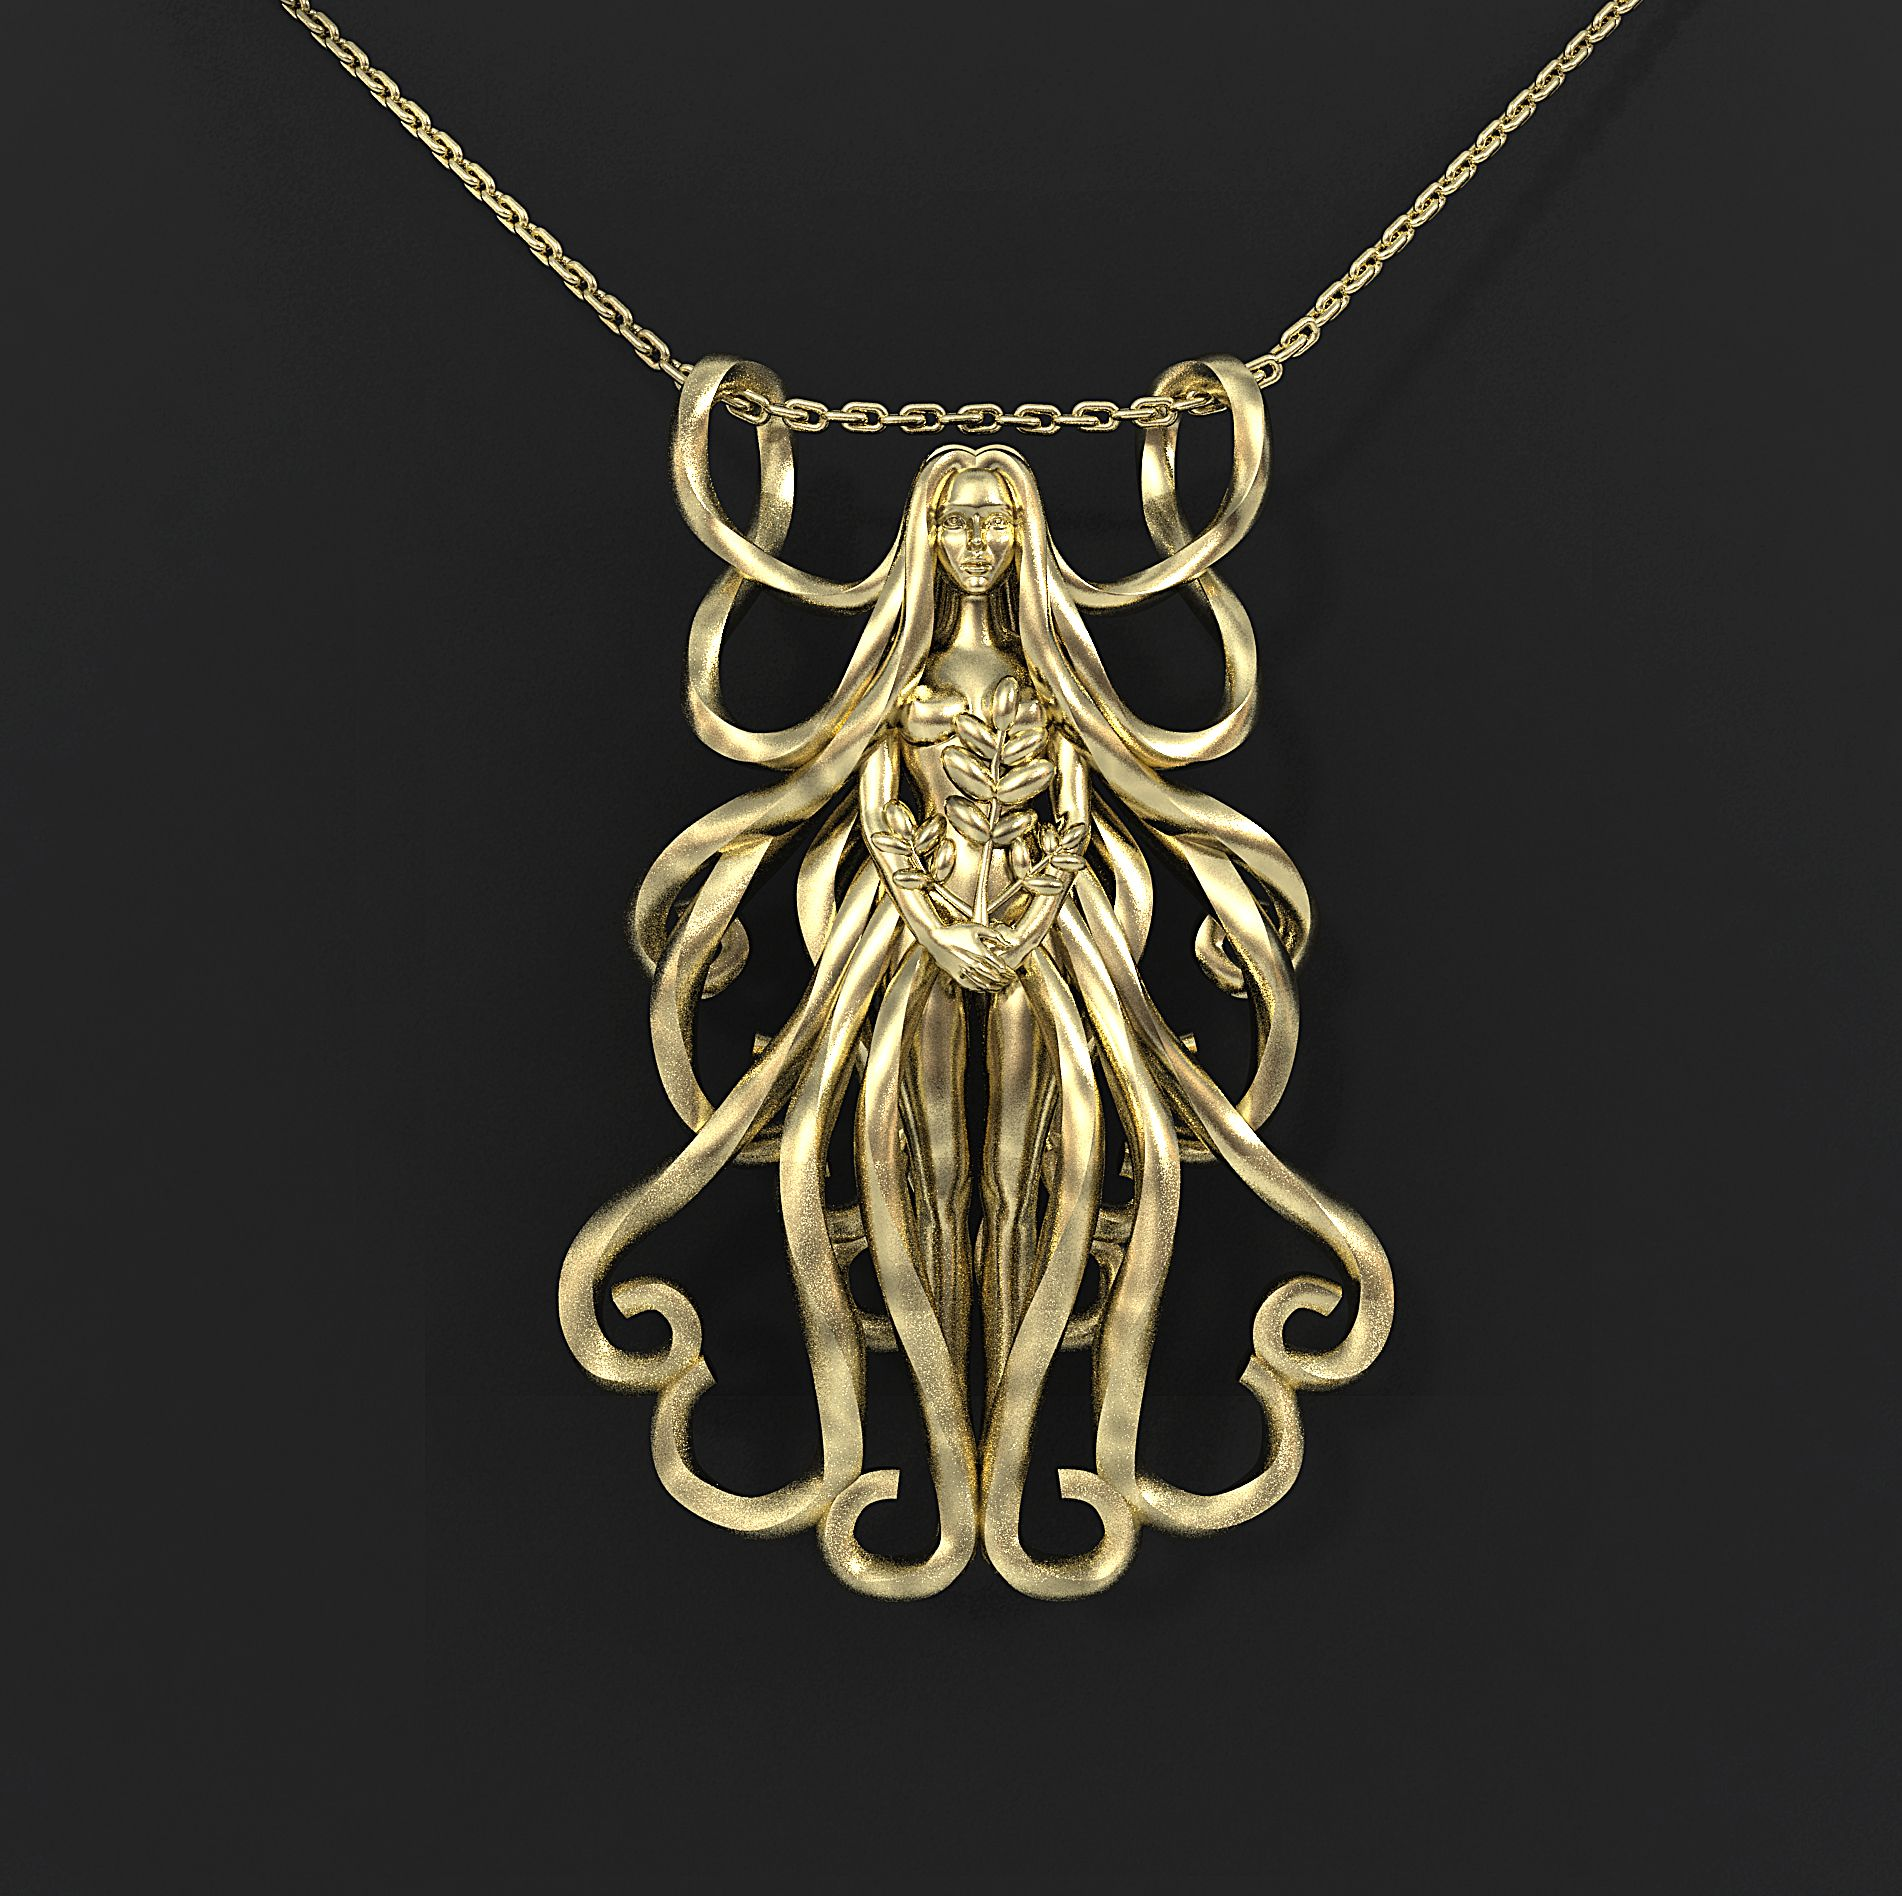 Other star signs available at Pinshape Virgo Zodiac Sign Pendant